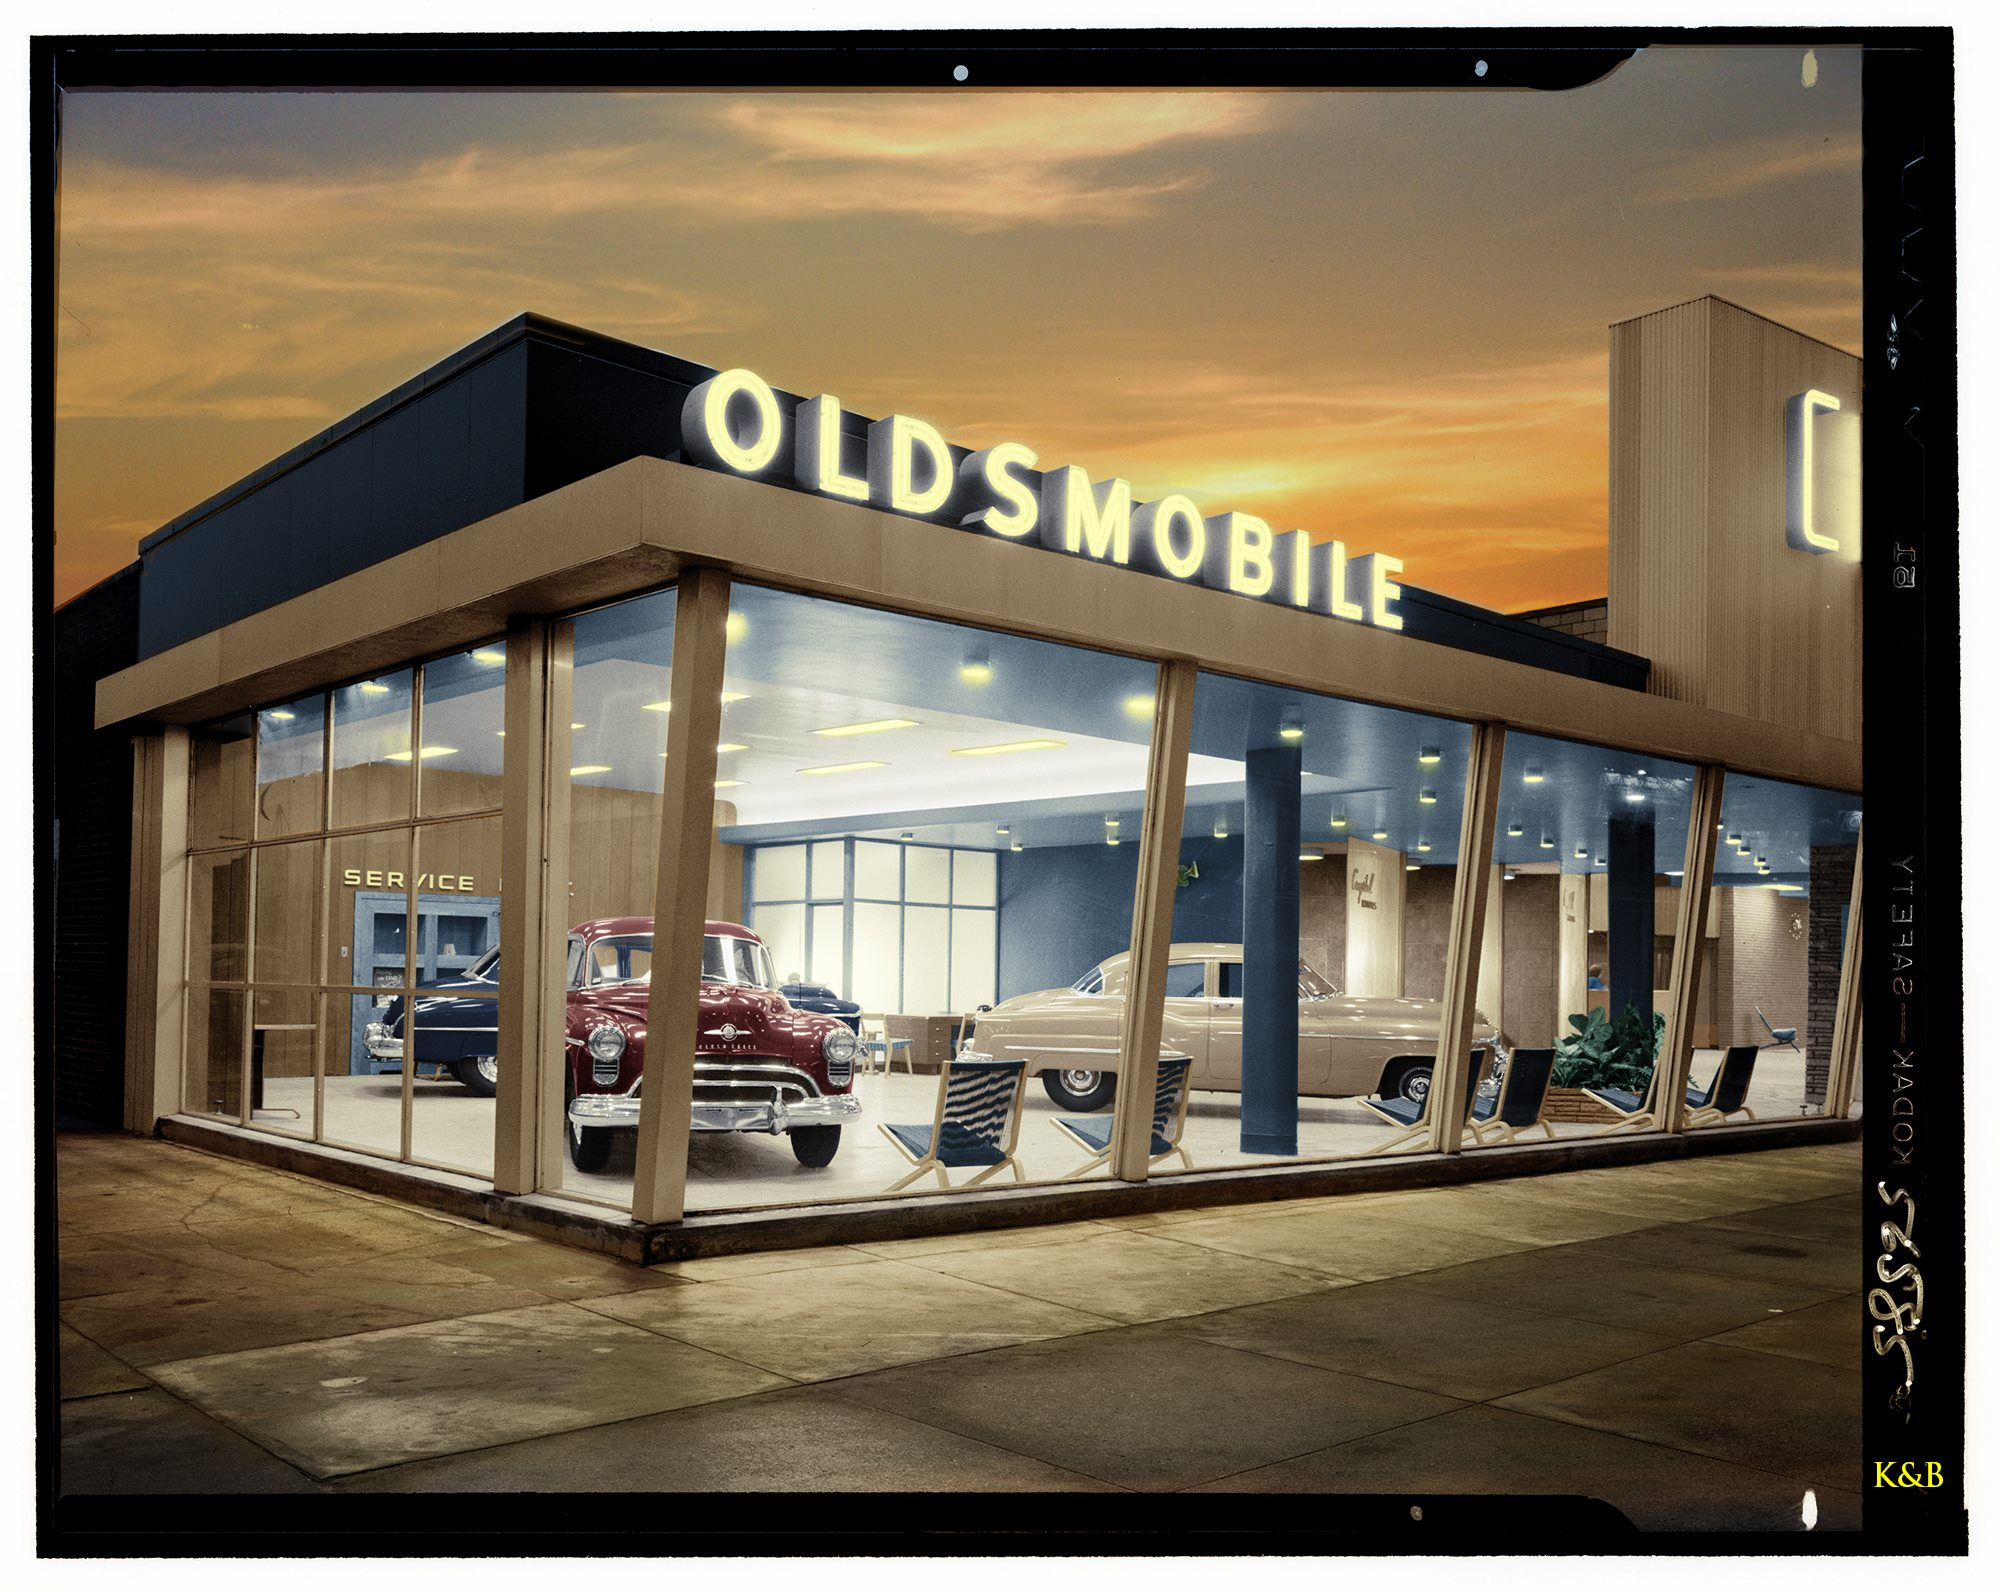 Oldsmobile Dealership, 1950, Brooklyn, NY ретро автомобили, ретро фото, фотографии